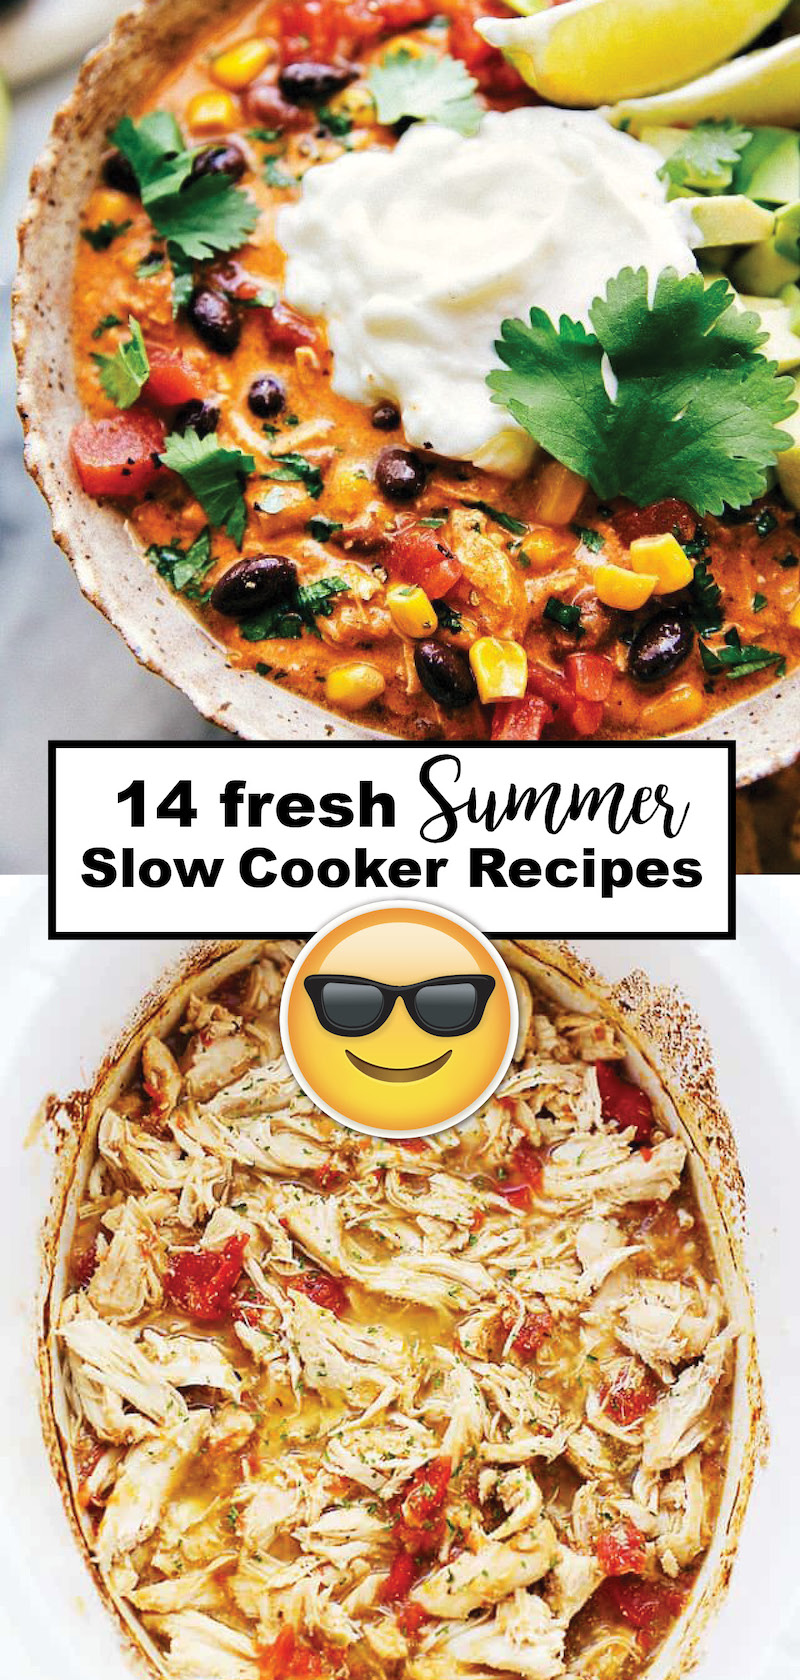 14 Light and Fresh Summer Slow Cooker Recipes